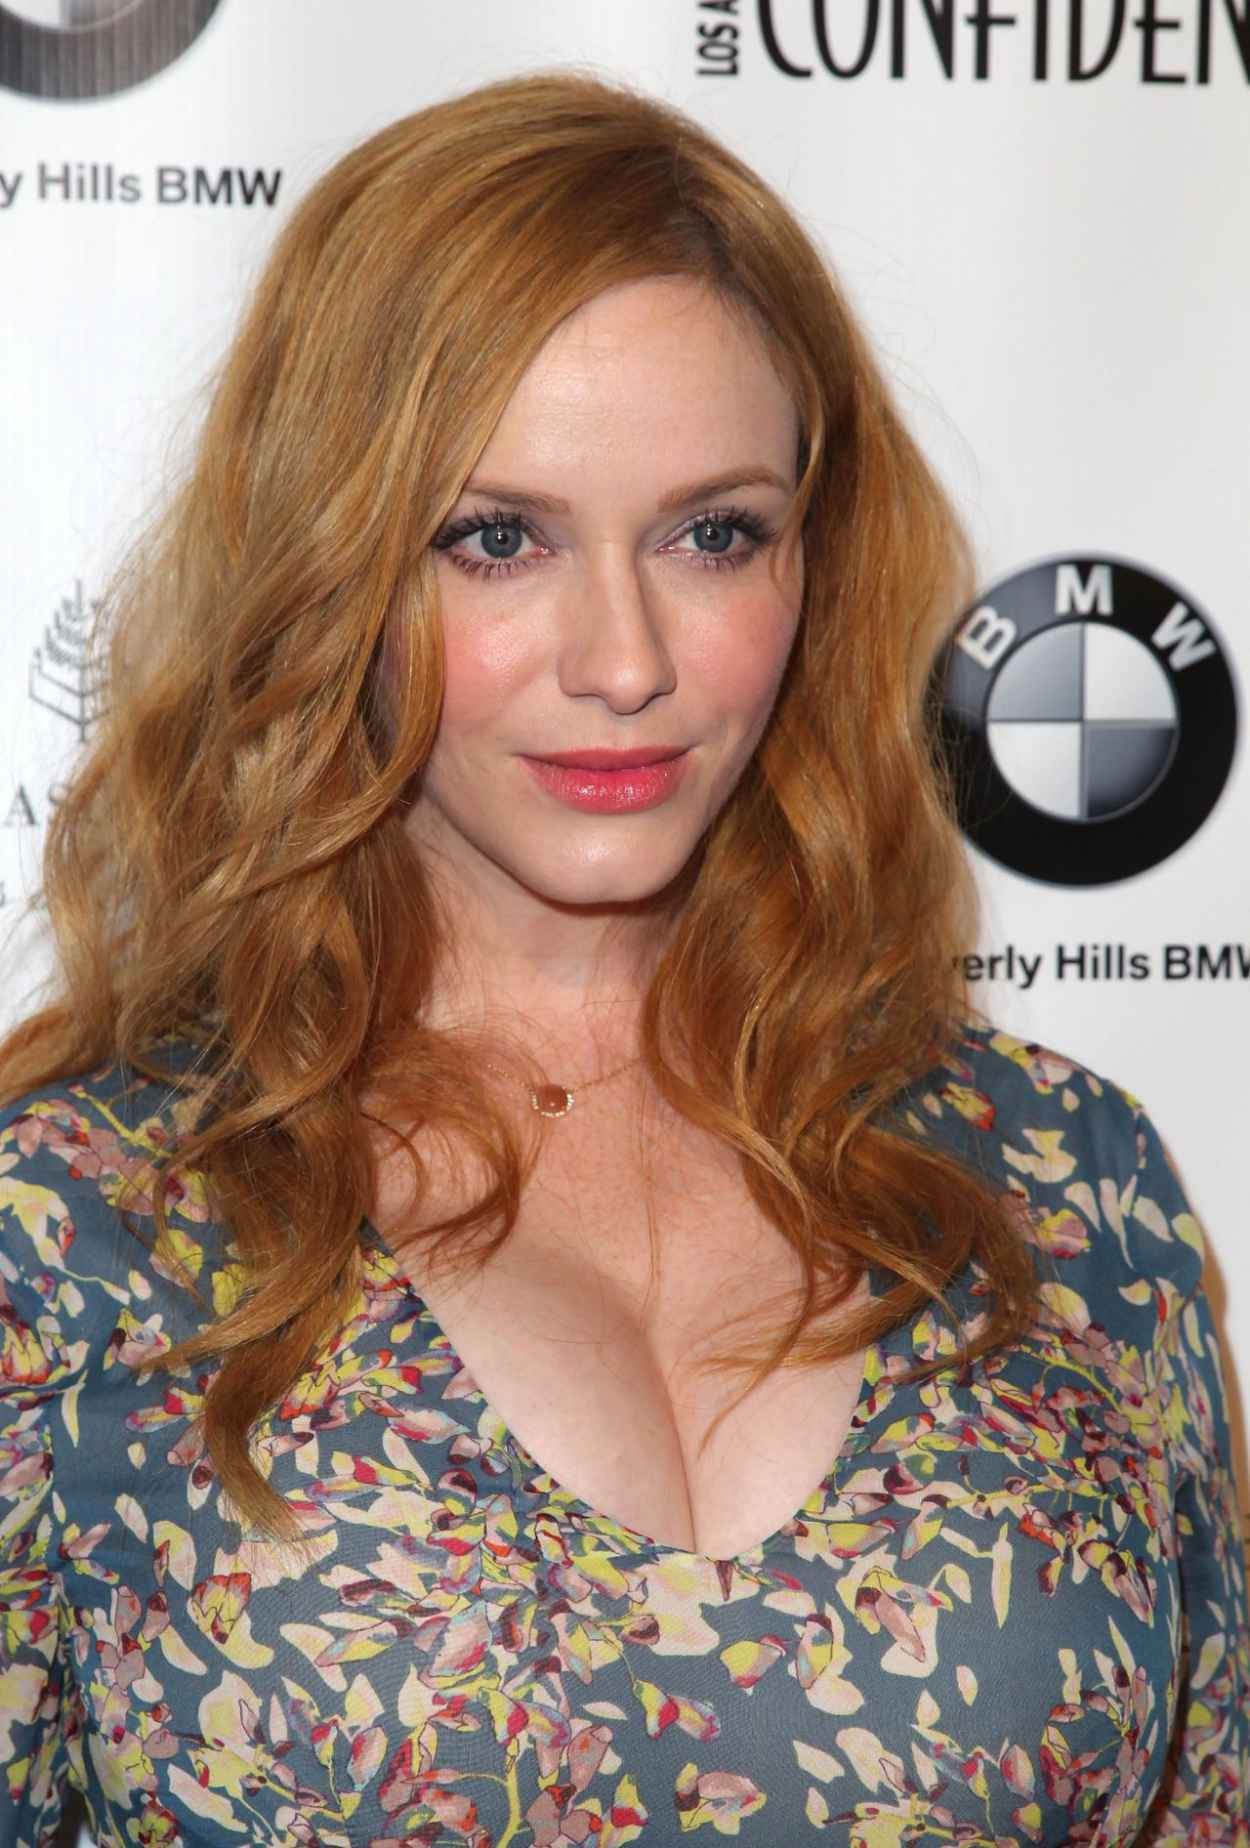 Christina Hendricks - Los Angeles Confindential Magazine Celebrates the Women Of Influene Issue in Beverly Hills-3